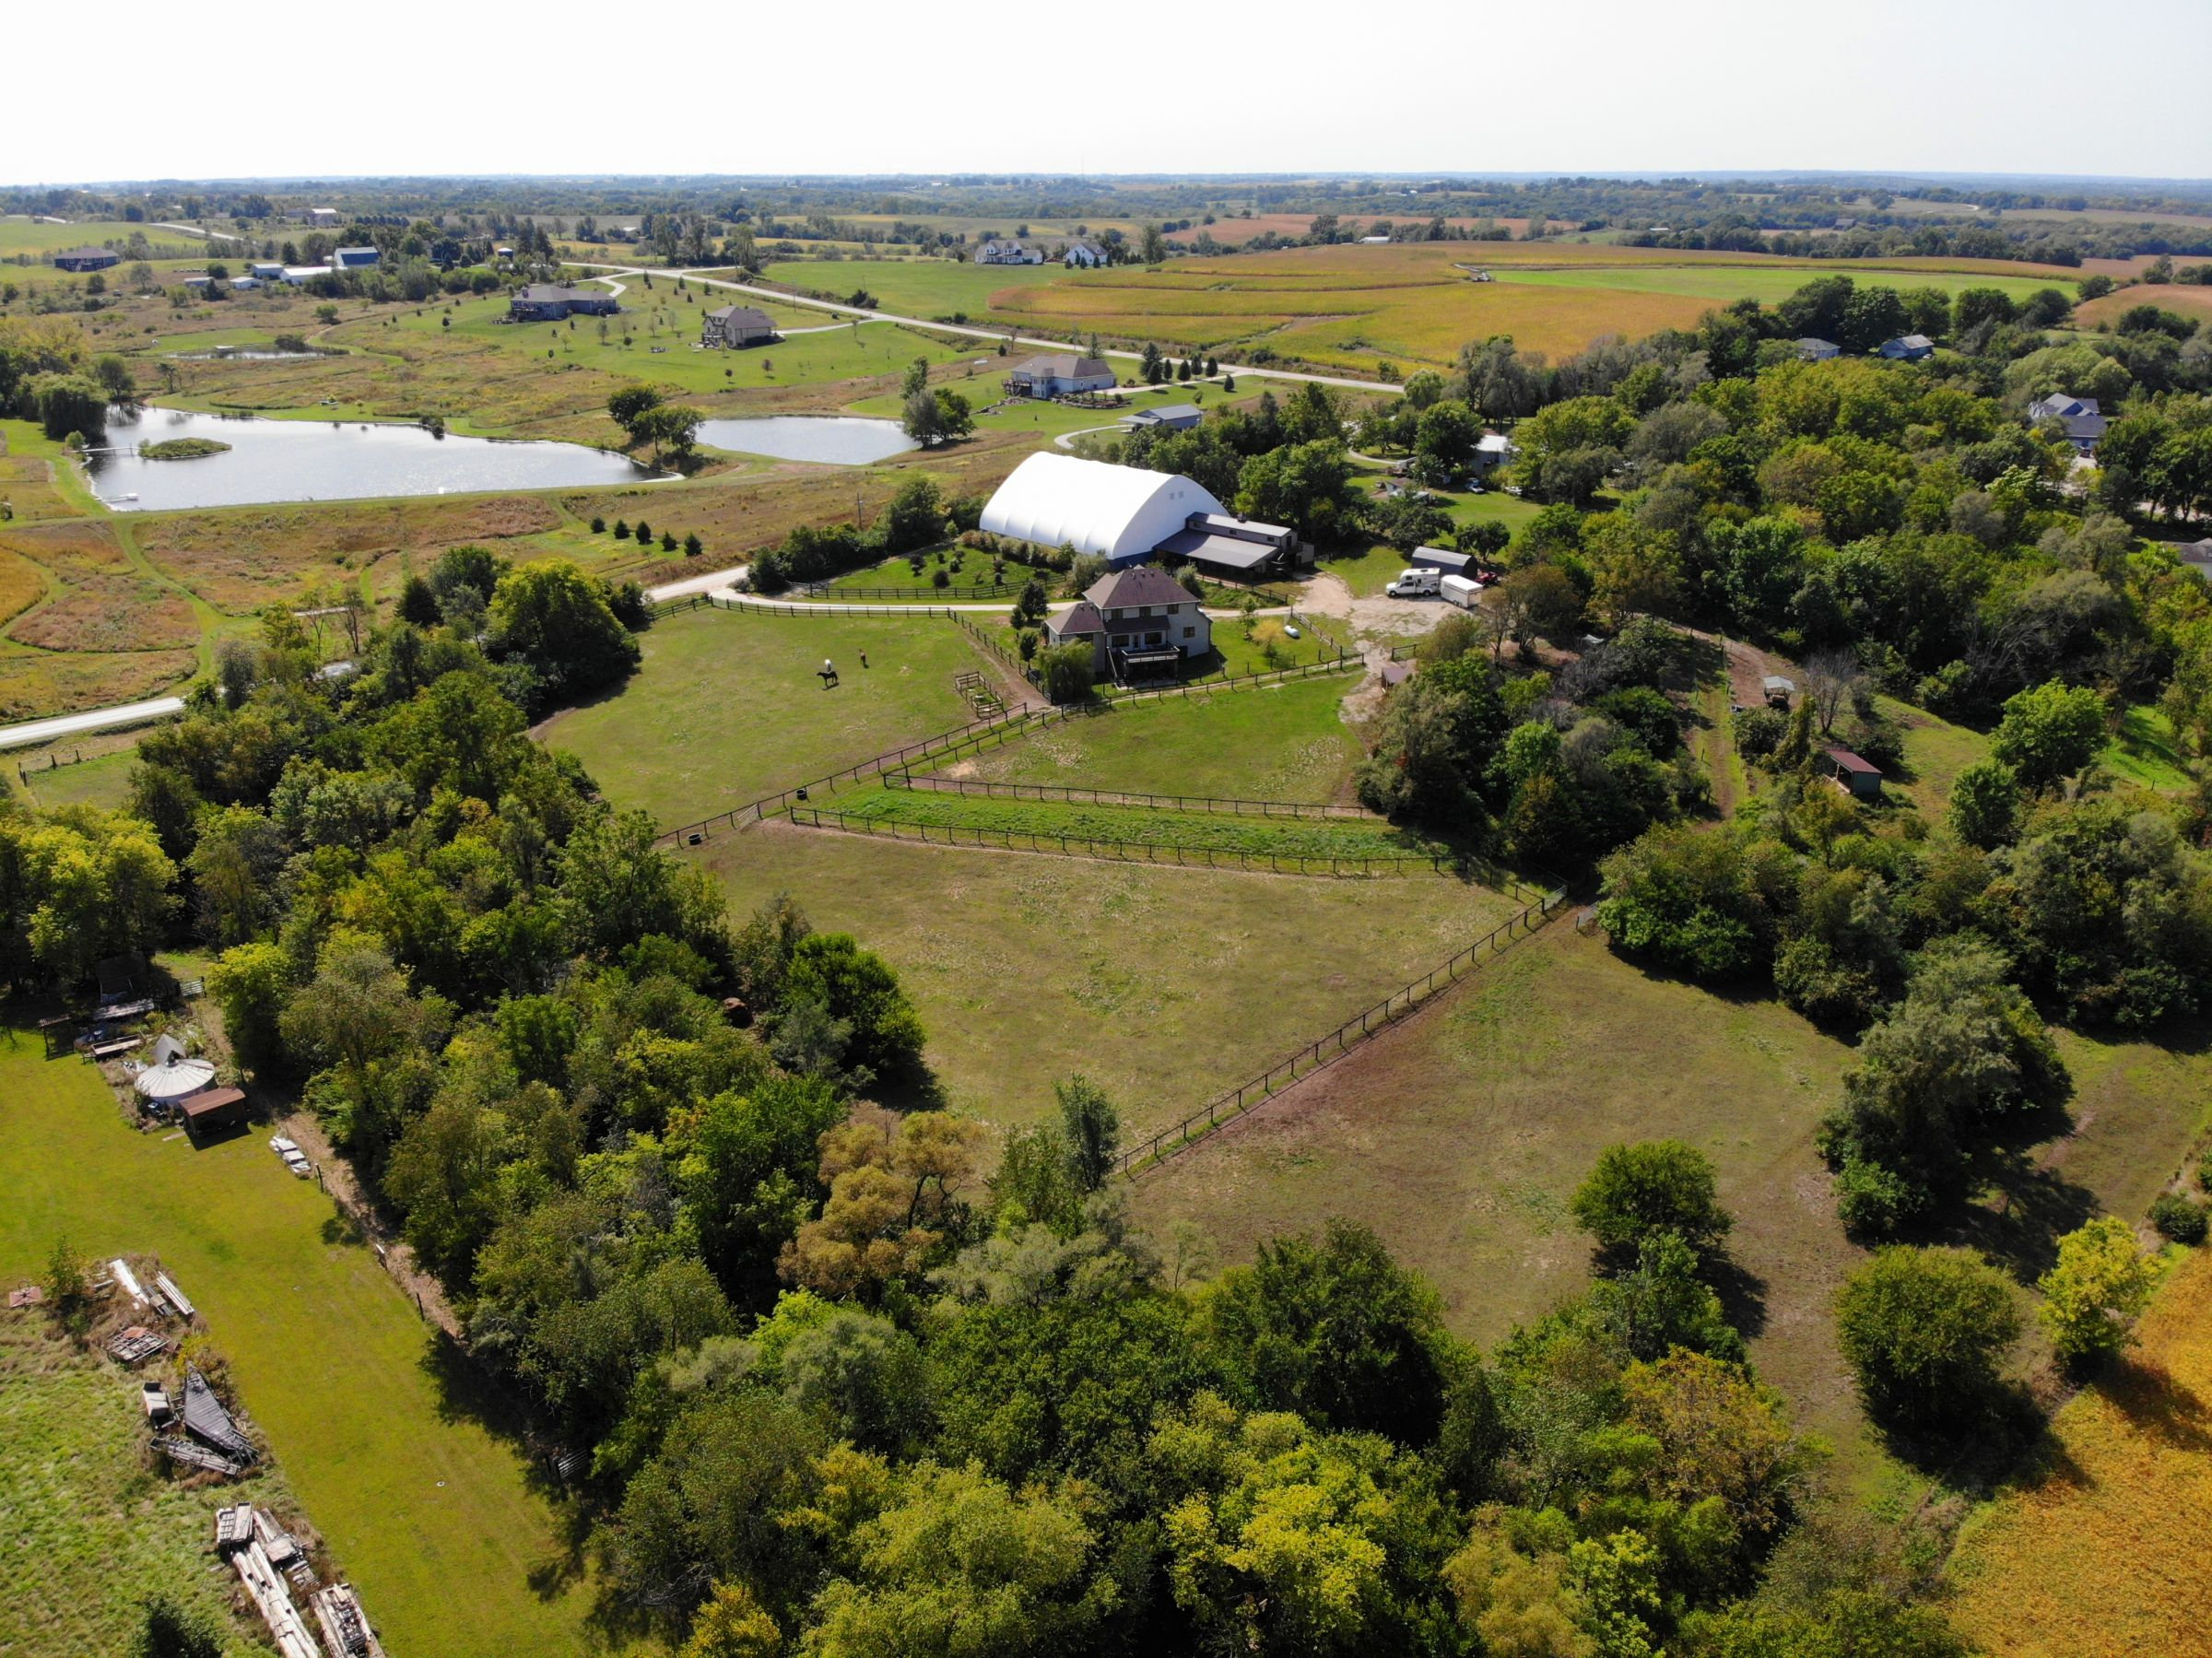 residential-warren-county-iowa-8-acres-listing-number-15130-2-2020-09-16-204229.JPG